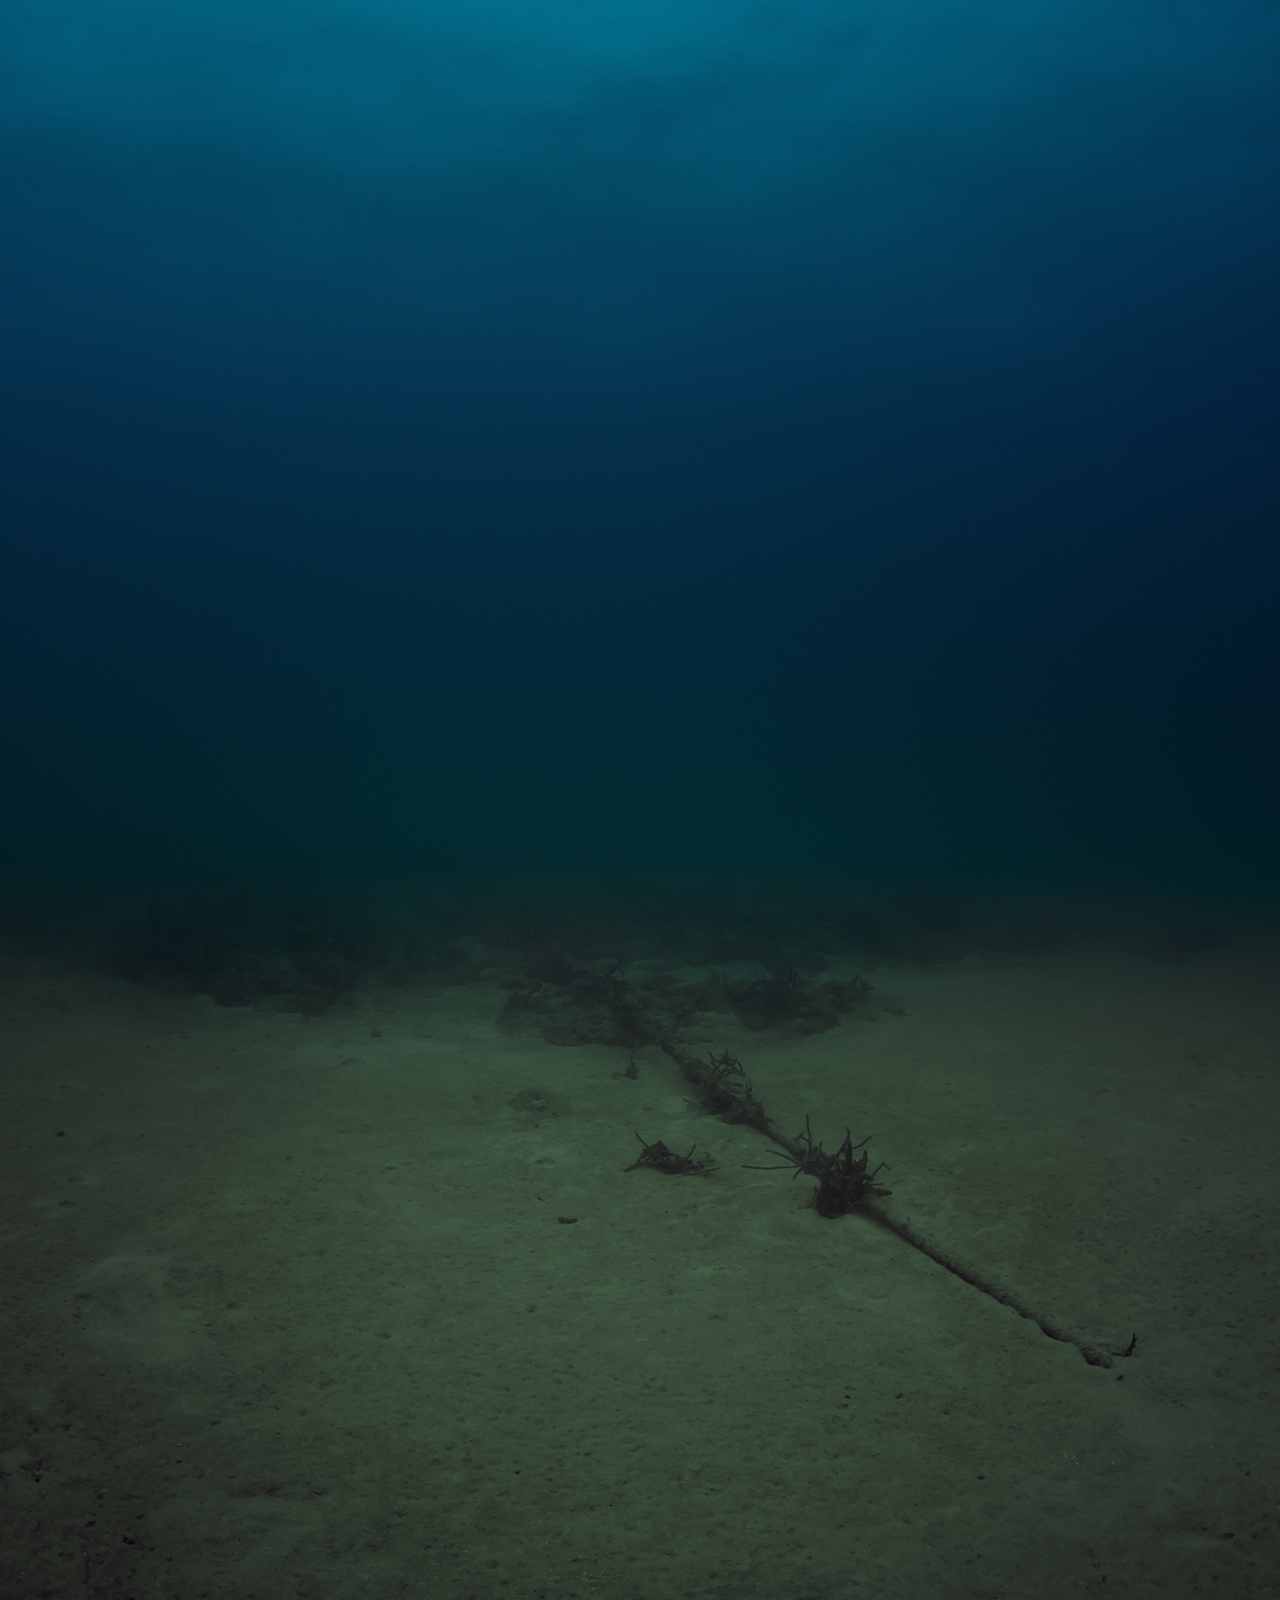 """Trevor Paglen, """"Bahamas Internet Cable System (BICS-1) NSA/GCHQ-Tapped Undersea Cable Atlantic Ocean"""" (2015), c-print (click to enlarge)"""